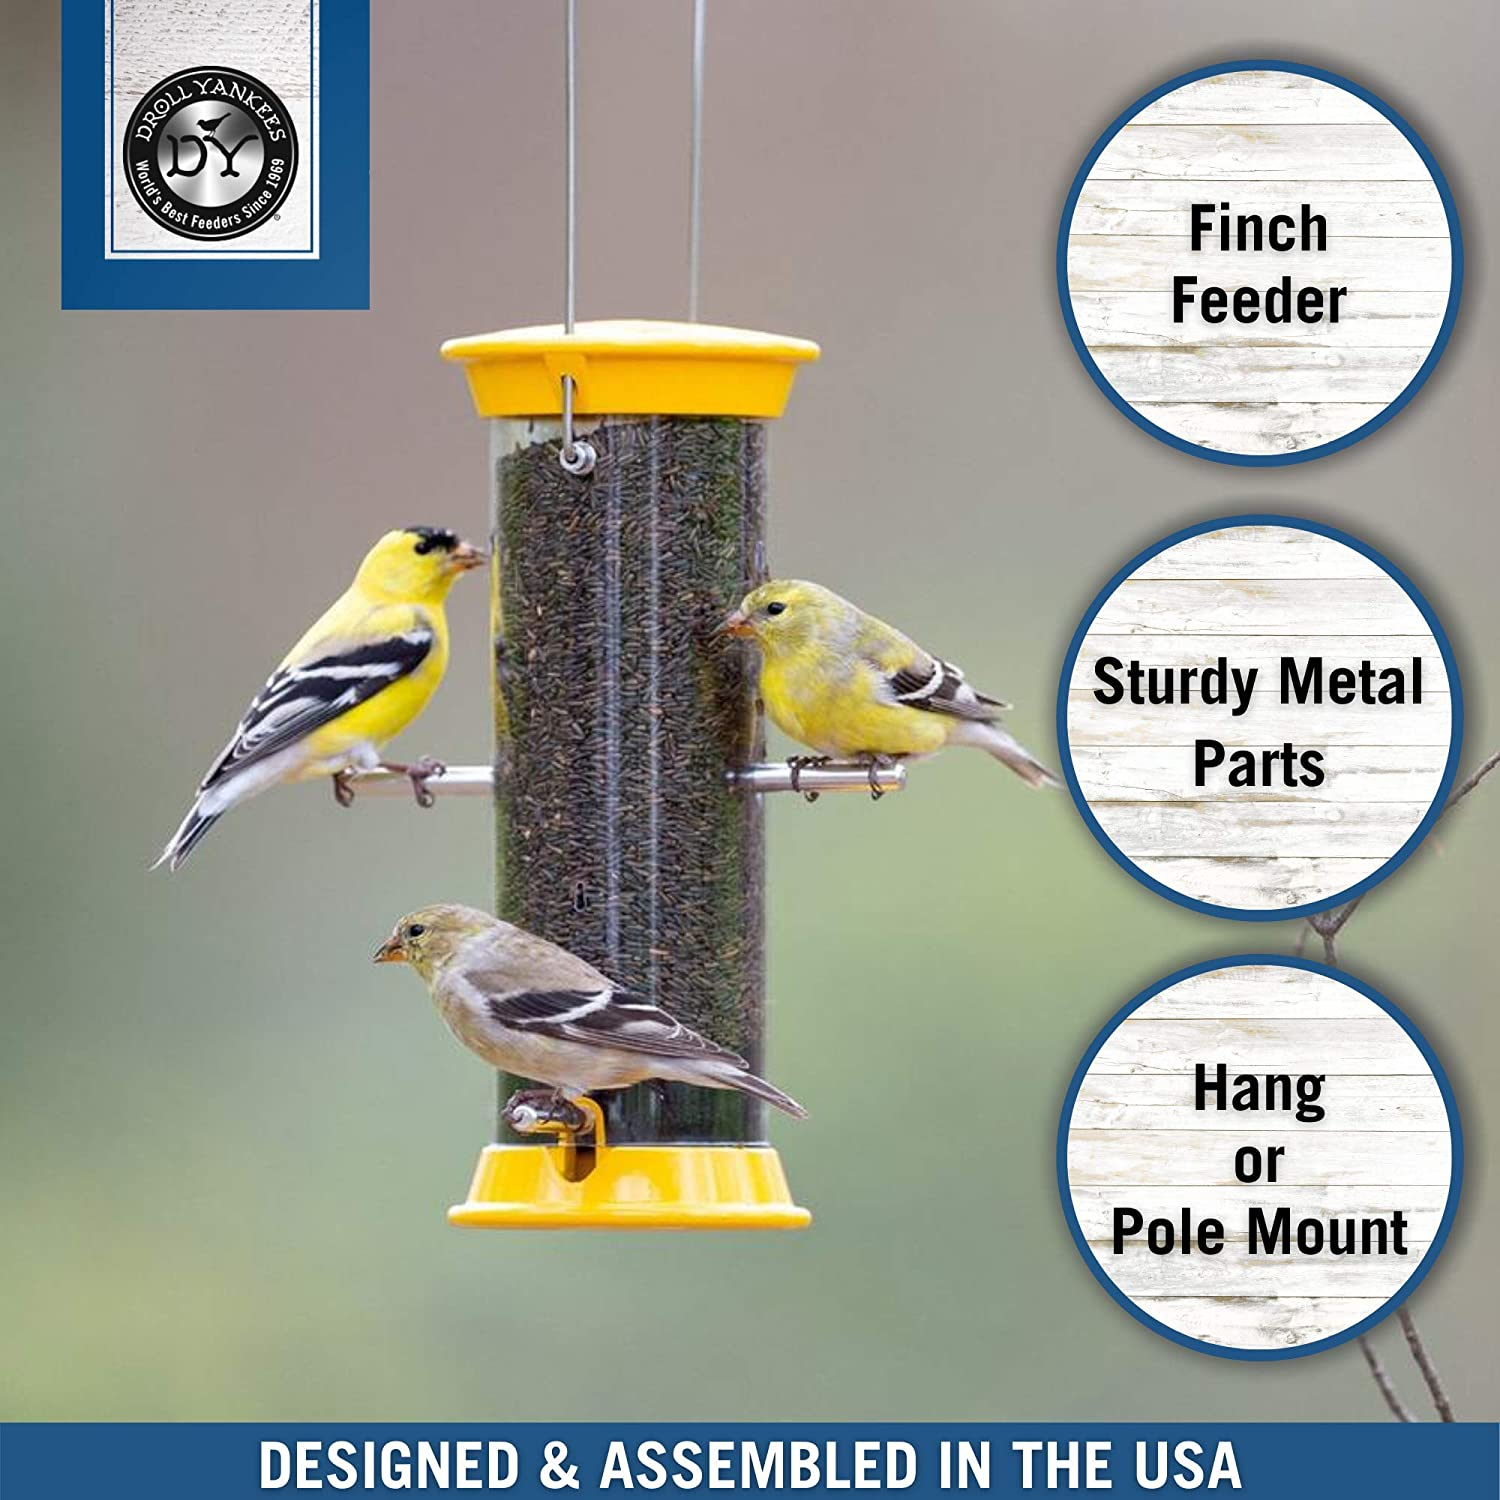 Easy to Clean Approximately 7 Pounds Capacity Finch Feeder Simple to Use